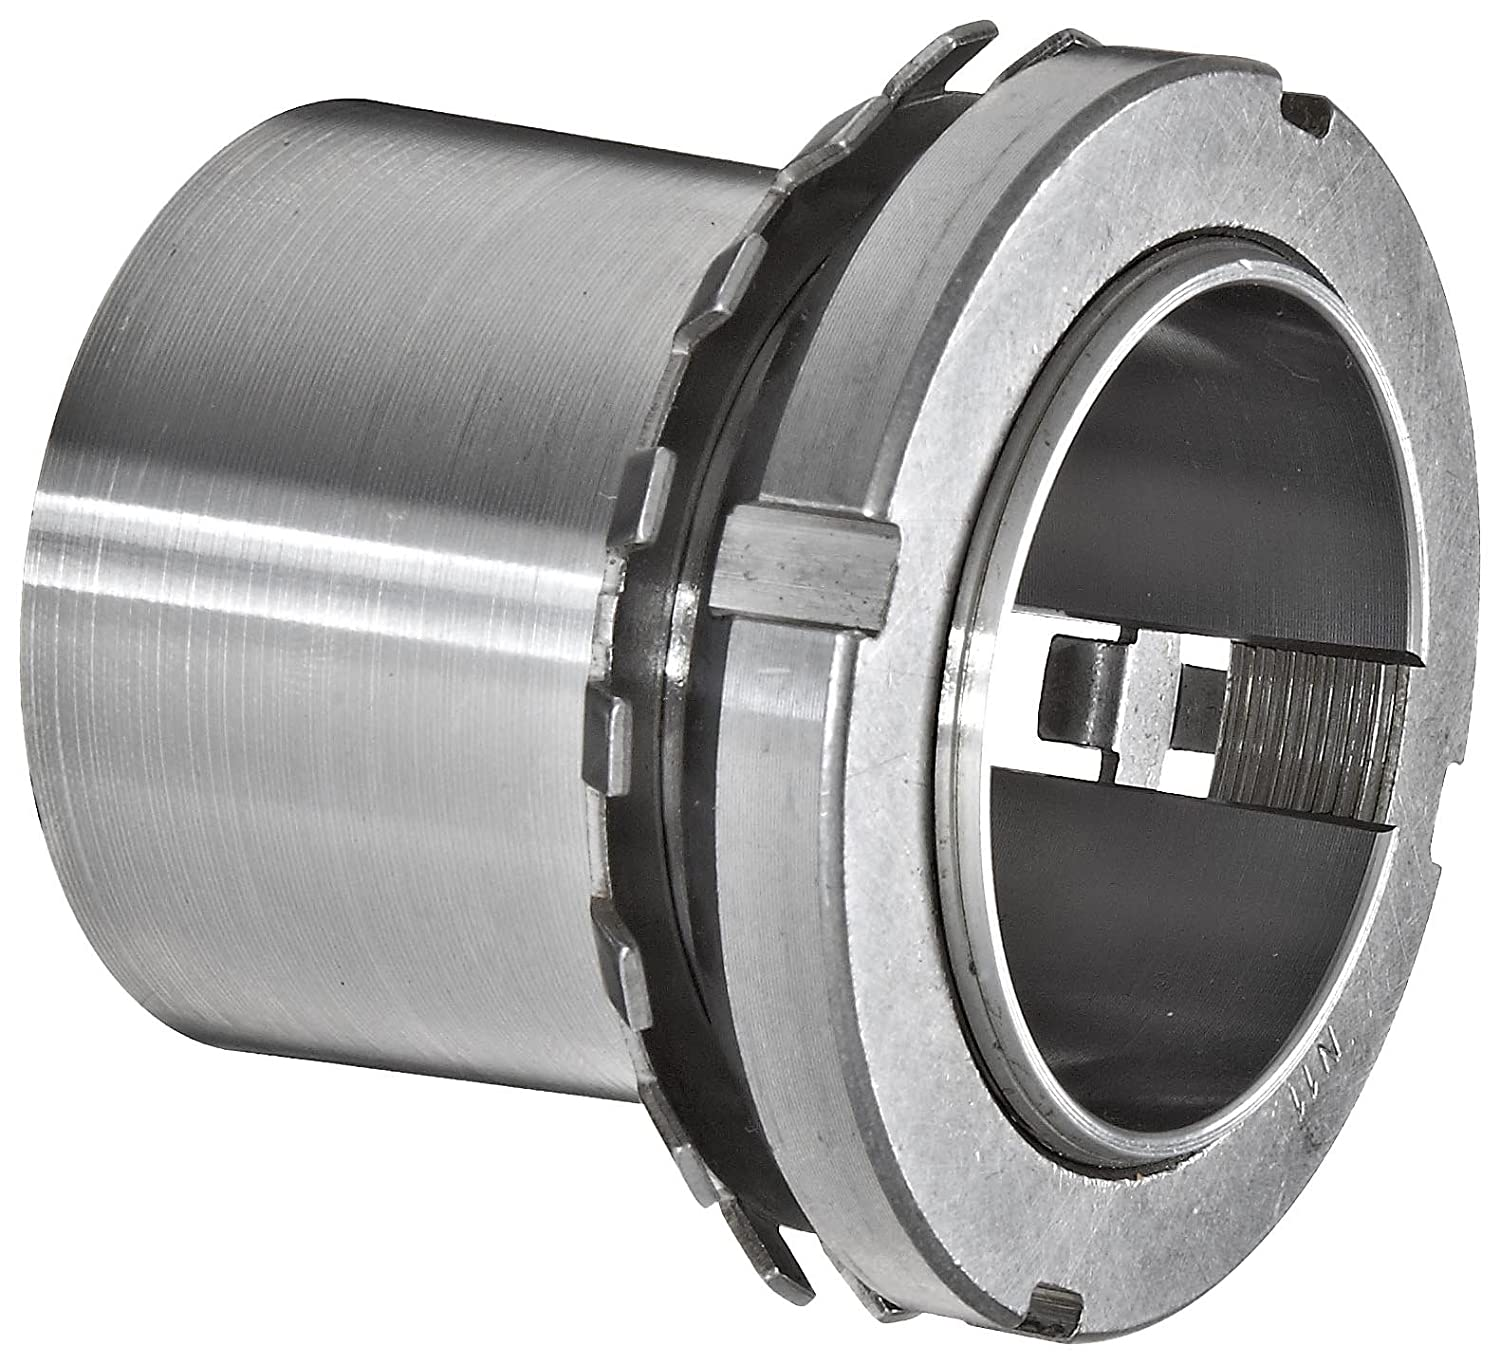 5 Shaft Size SKF SNW 28X5 Used With 22200K Series Roller Bearings 5 Shaft Size Adapter Sleeve Inch